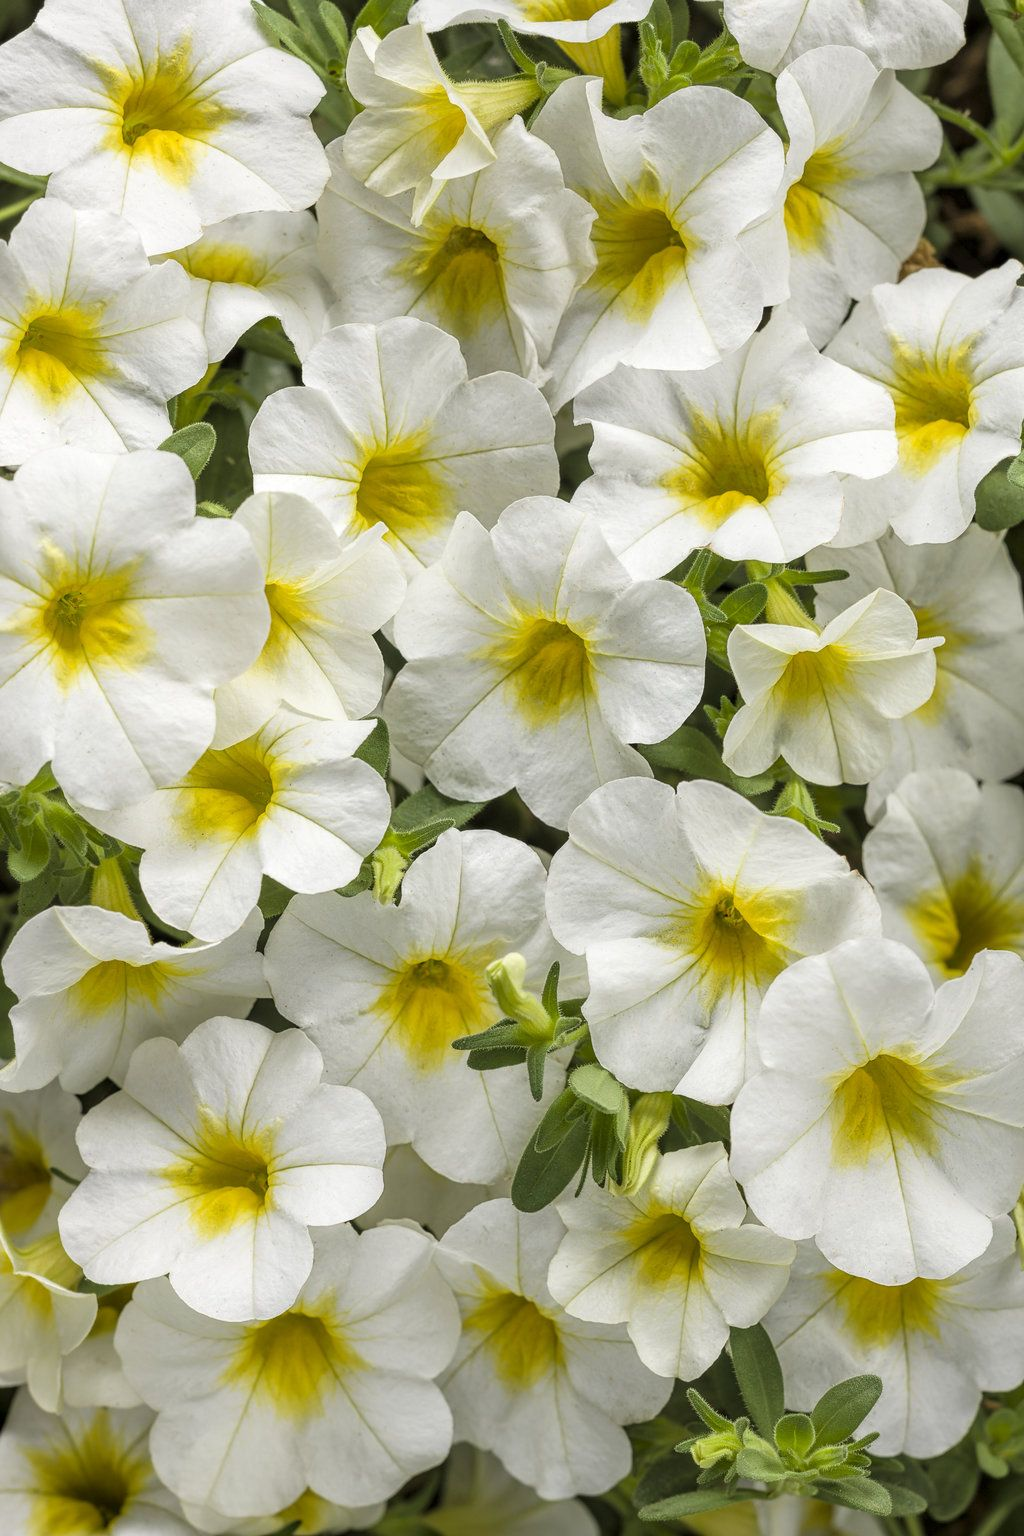 superbells over easy calibrachoa hybrid proven winners